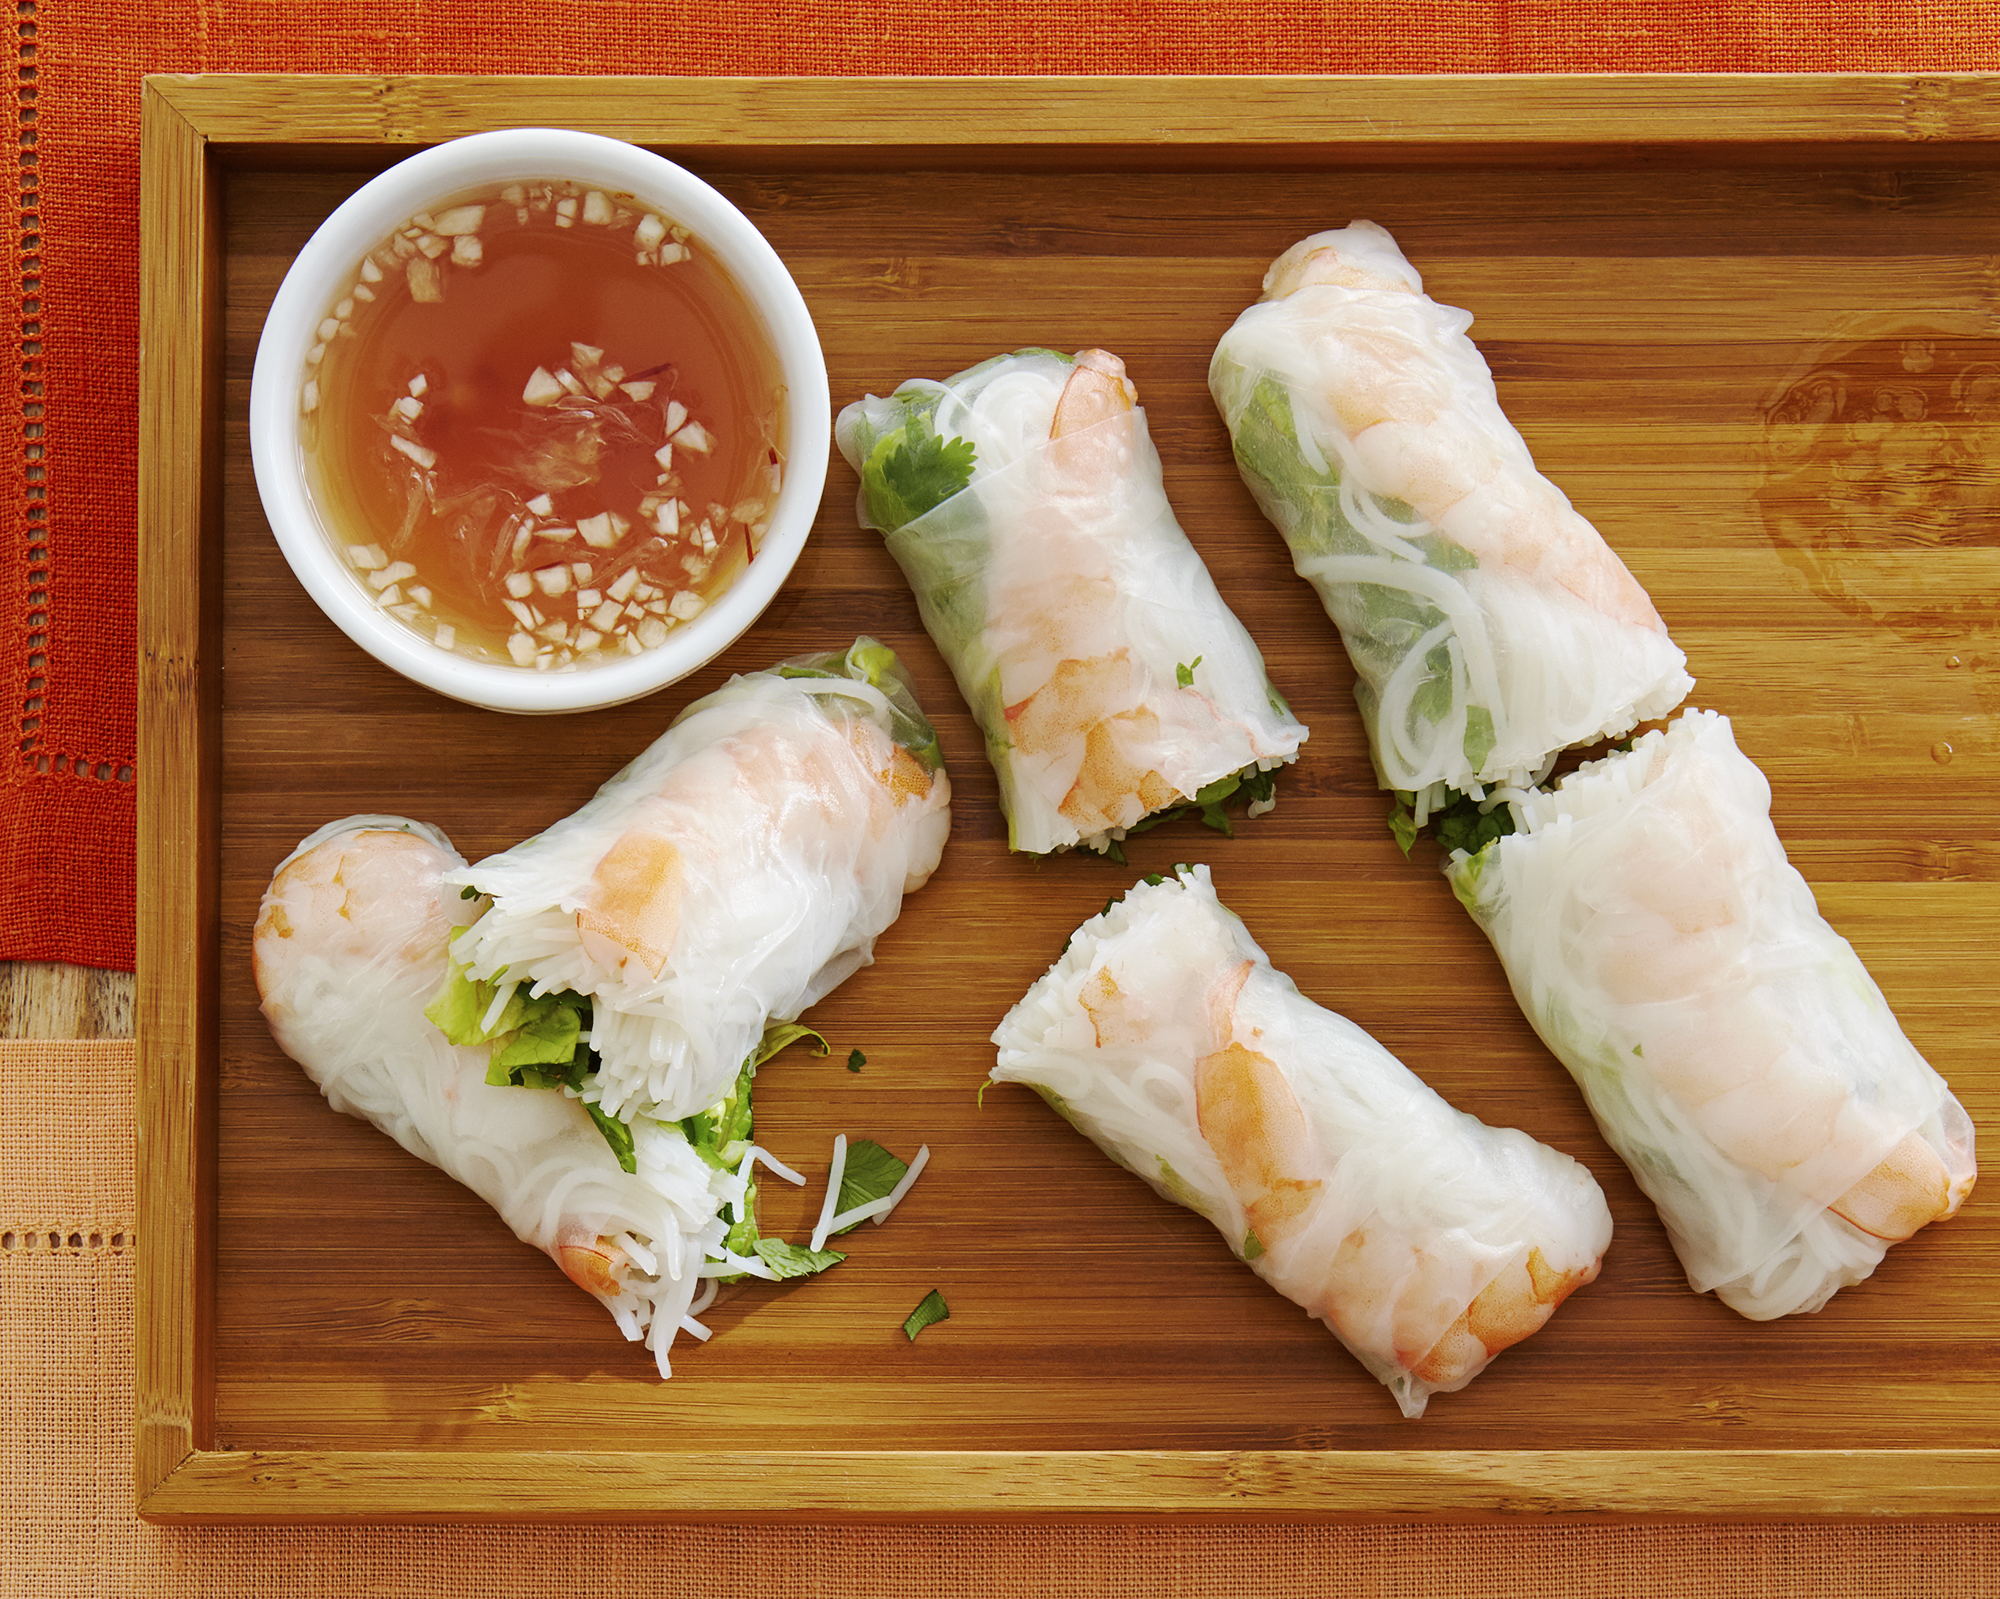 An overhead view of 3 Vietnamese Spring rolls, cut in half, on a bamboo tray. Served with a chili sauce